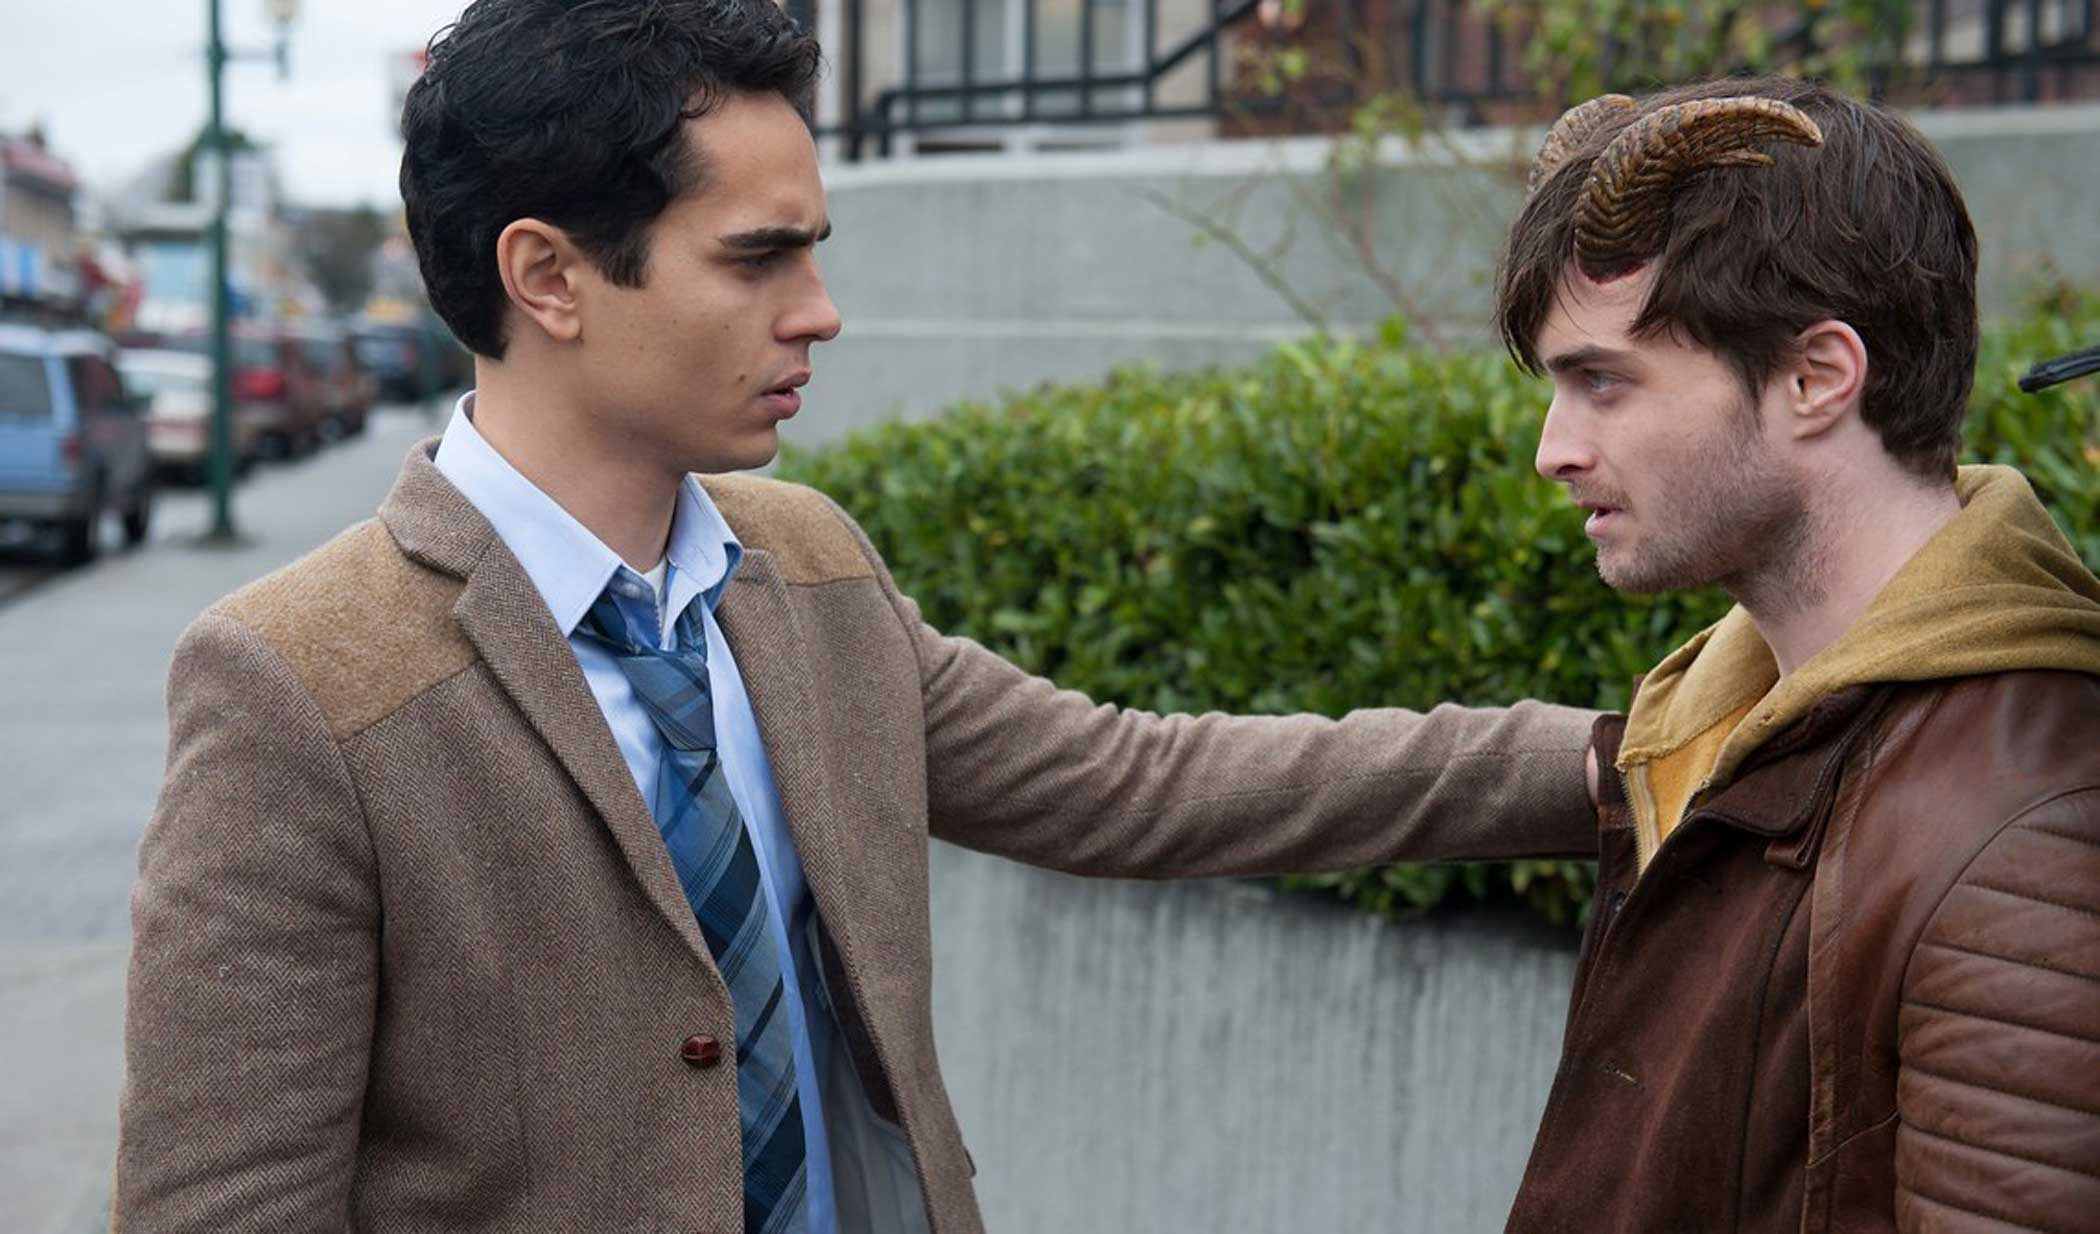 Max Minghella and Daniel Radcliffe in Horns